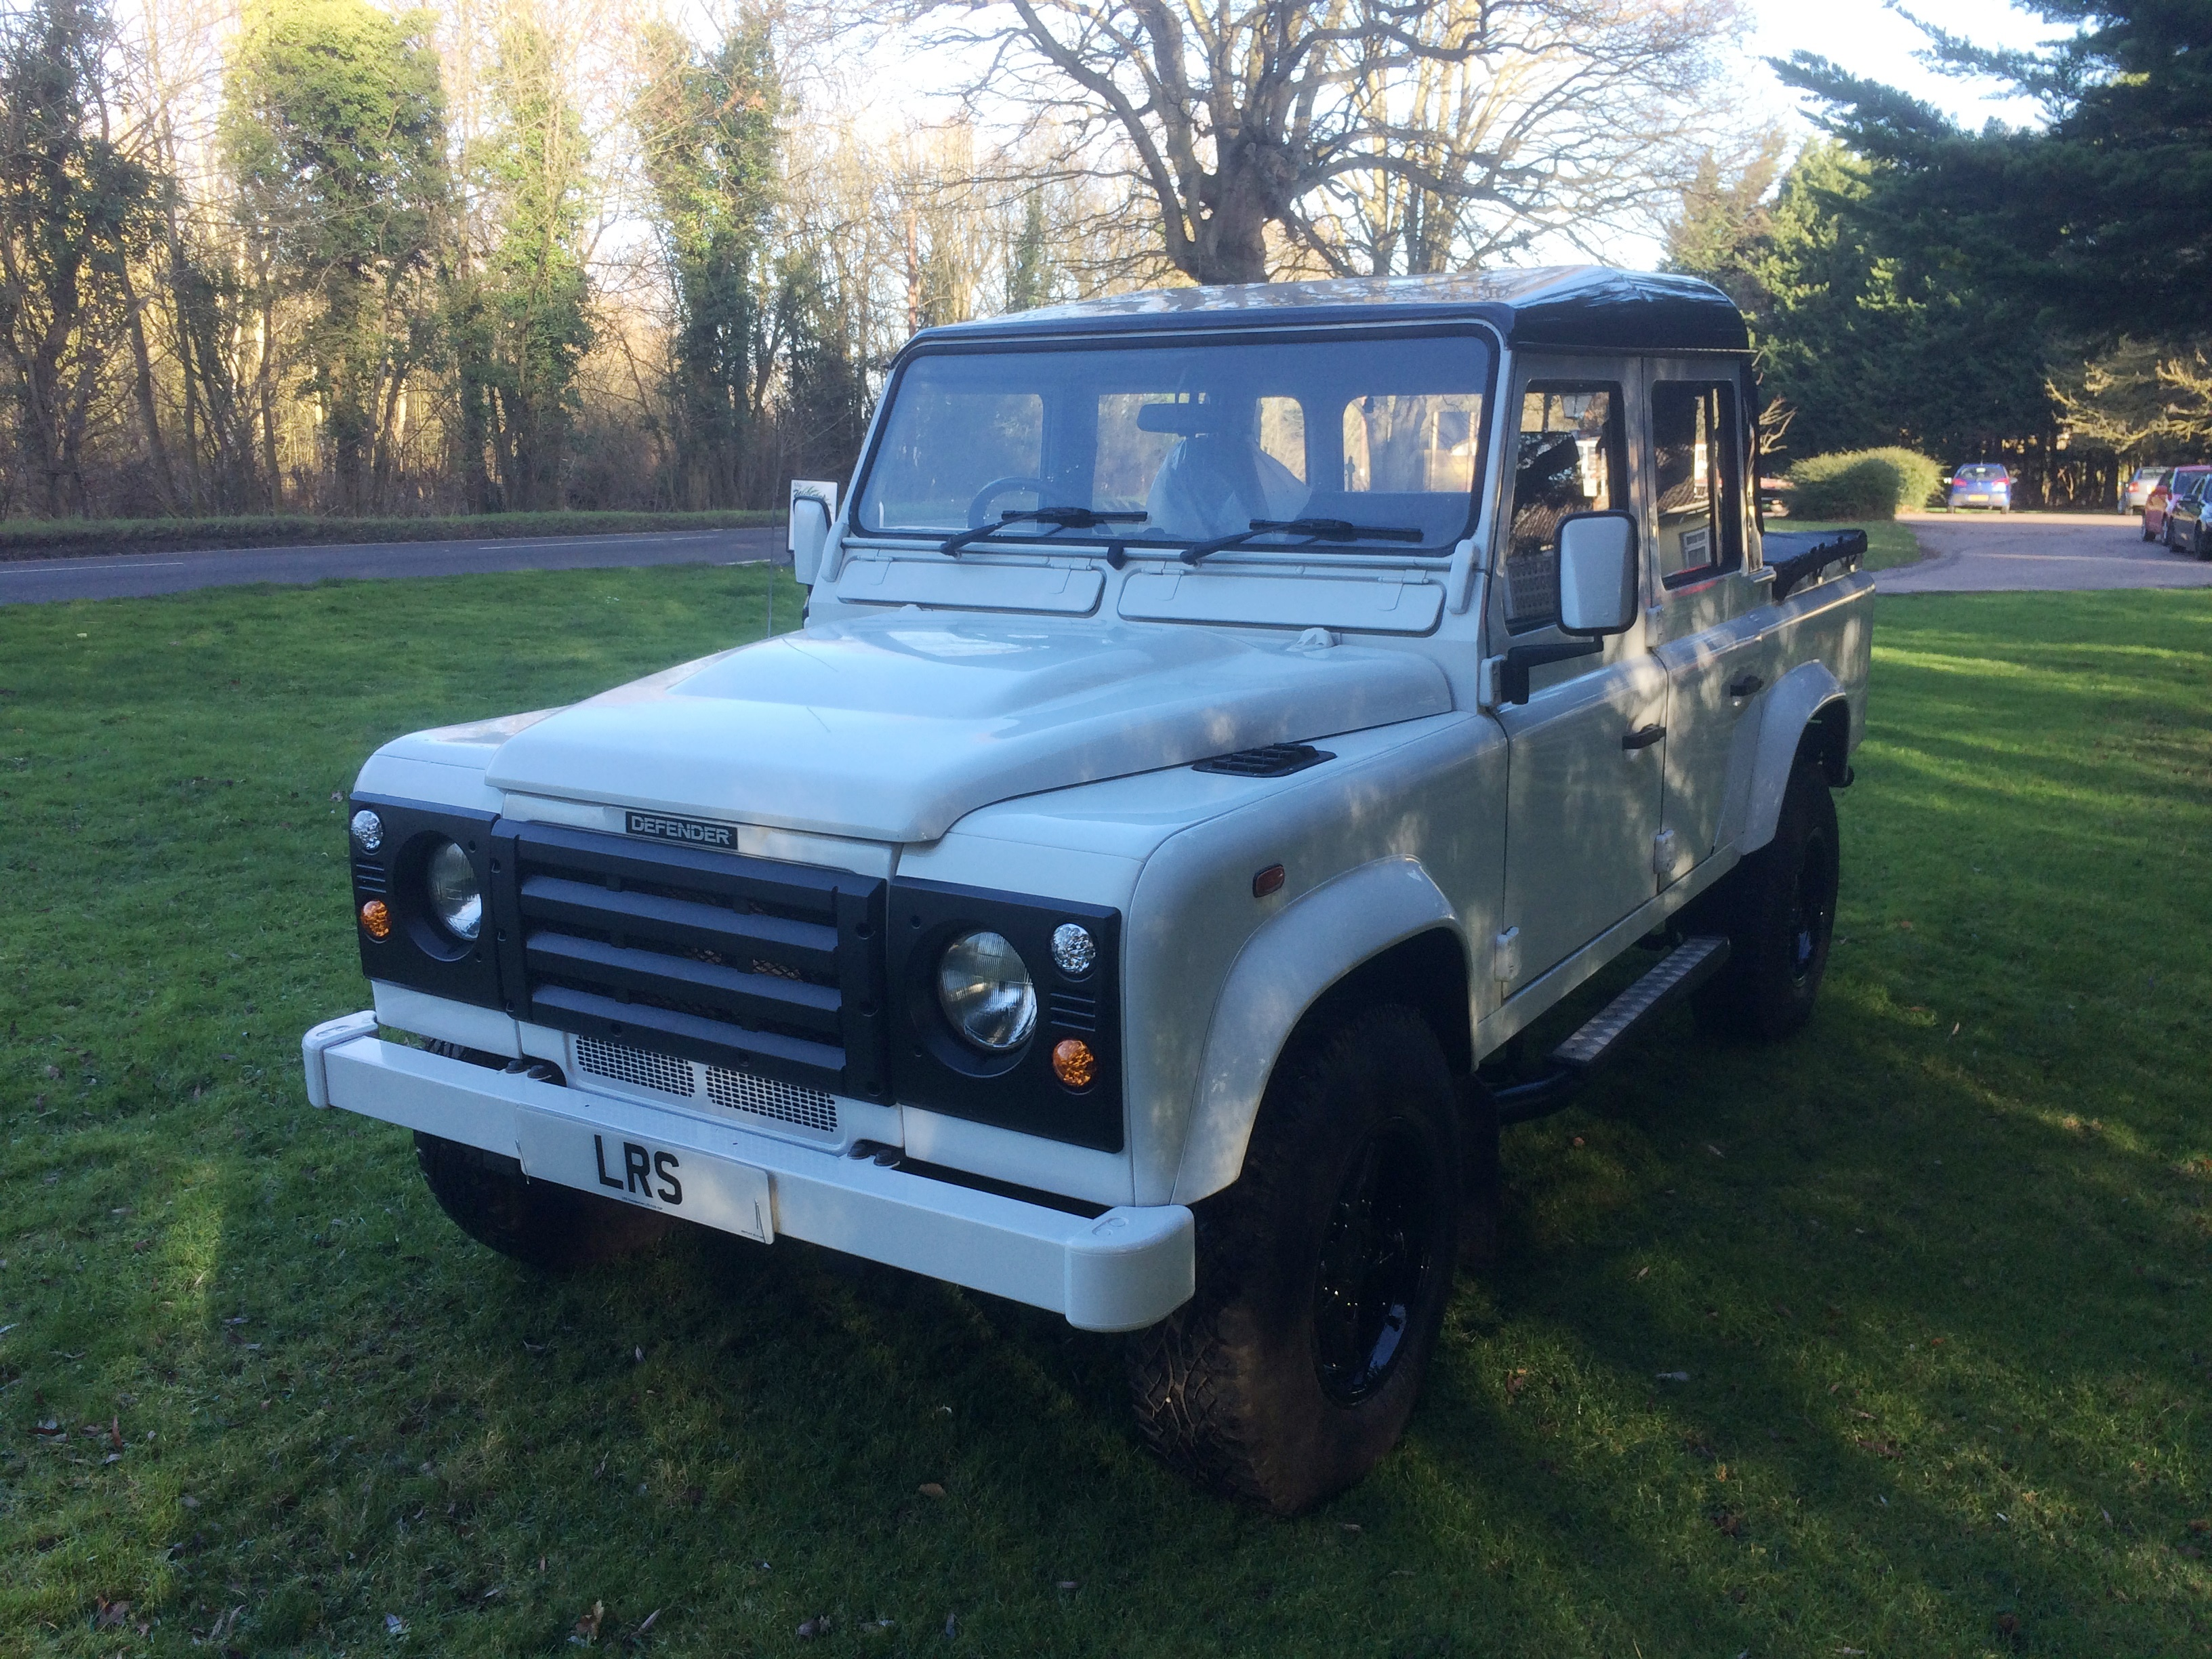 dsc land automotive landrover rover expedition edition tweaked listings defender tires